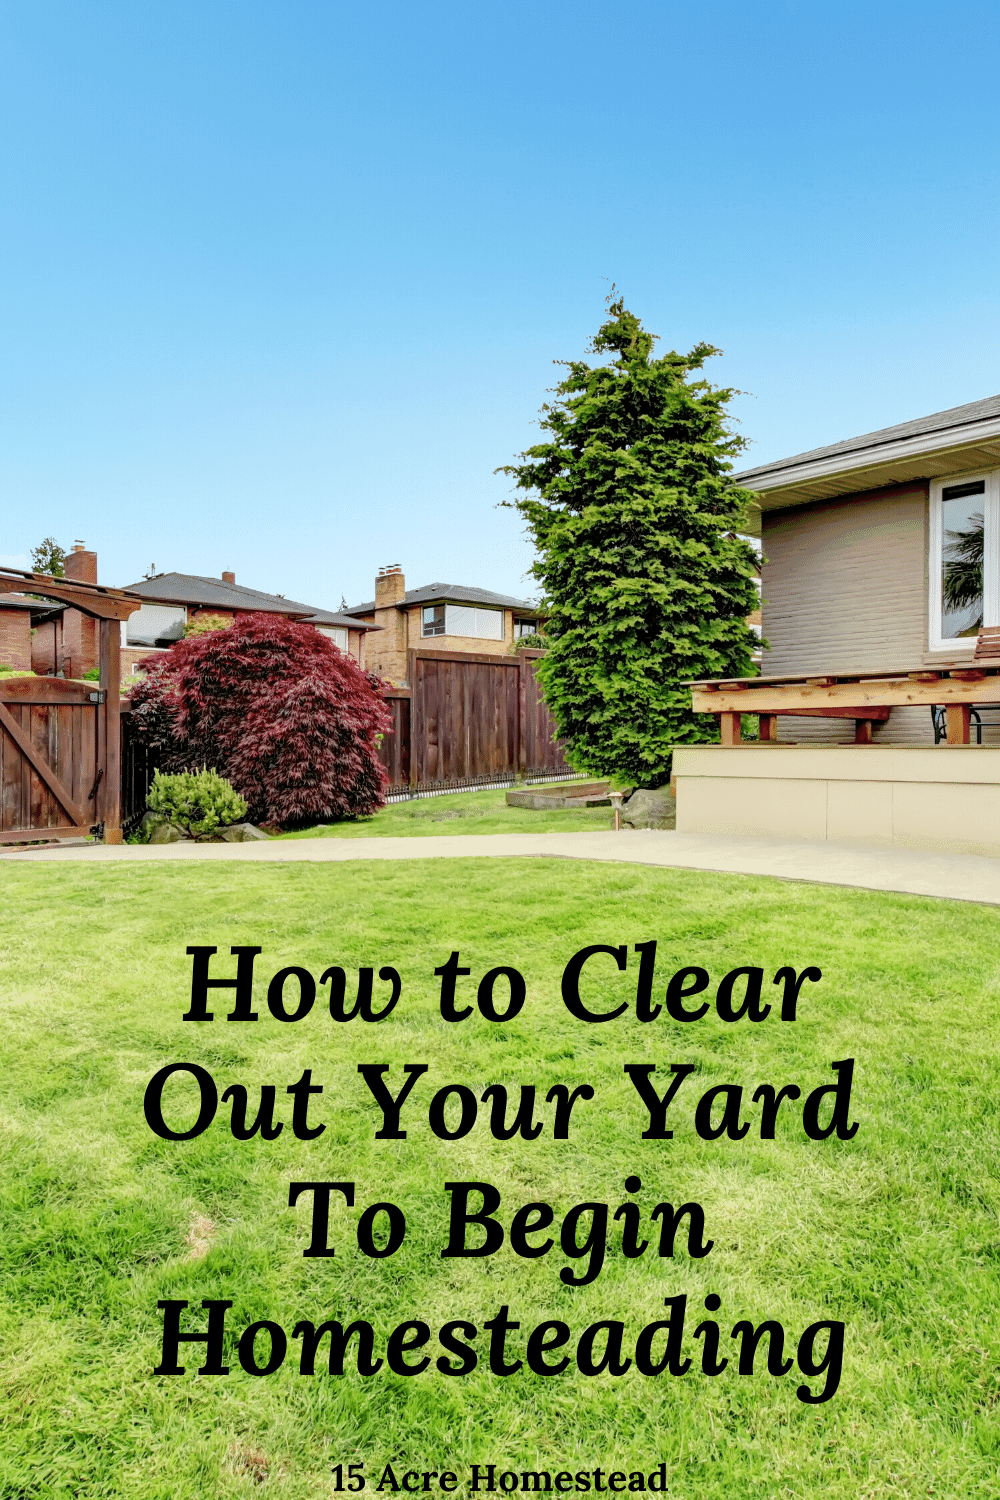 Before you start homesteading and start gardening you should clear out your yard to prepare for your journey. Here are some tips to make it easier.